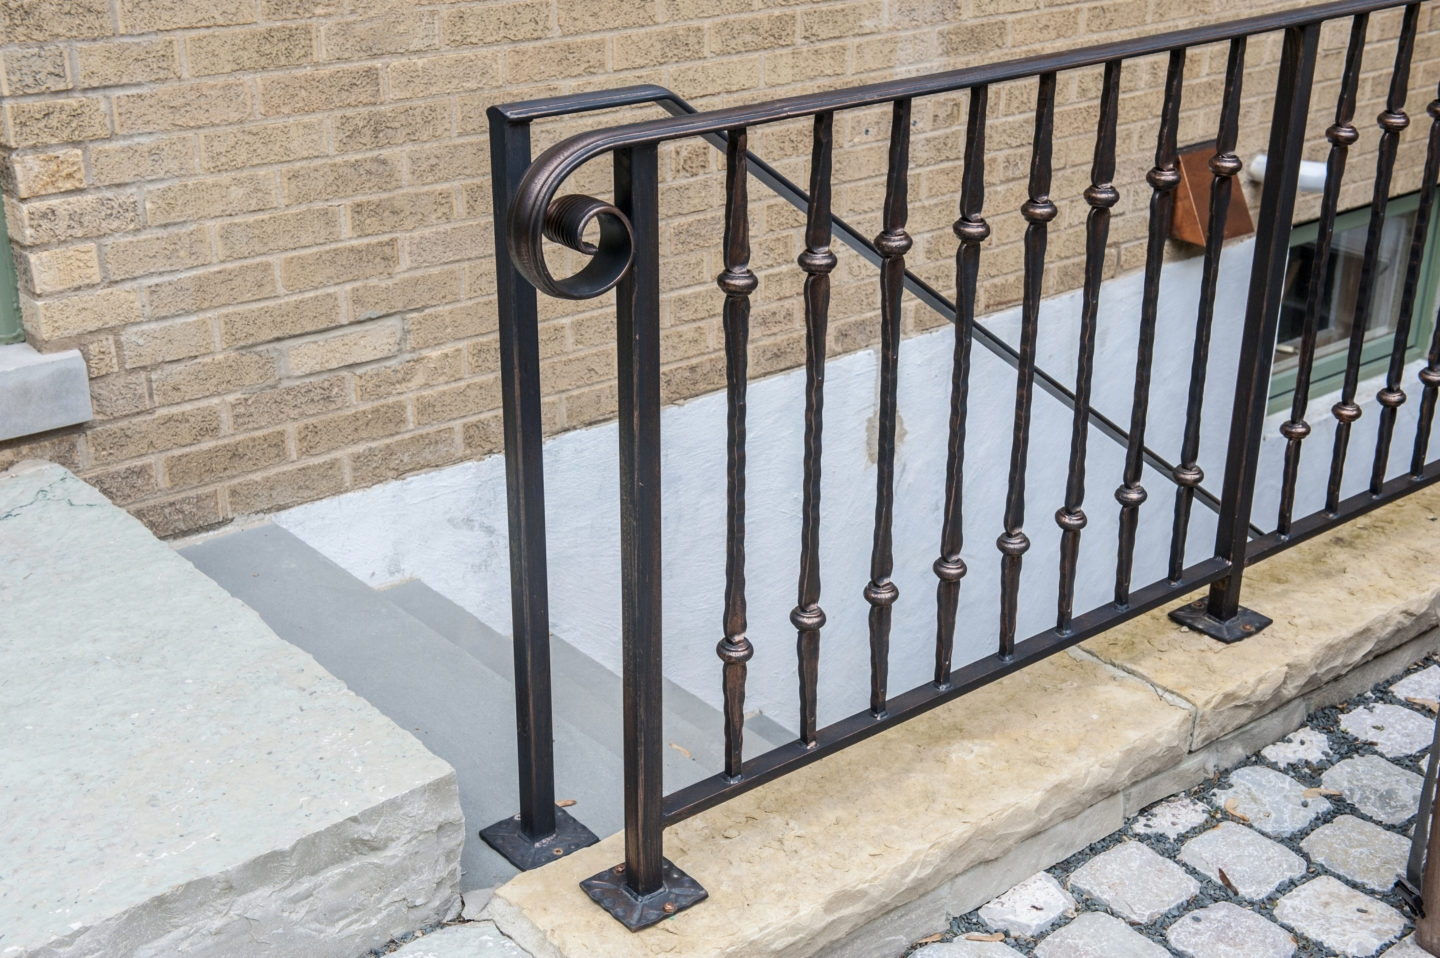 Looking For Custom Rustic Residential Collar Railing Signature   Rustic Wrought Iron Stair Railings   Simple   House   Cabin   Iron Baluster   Contemporary